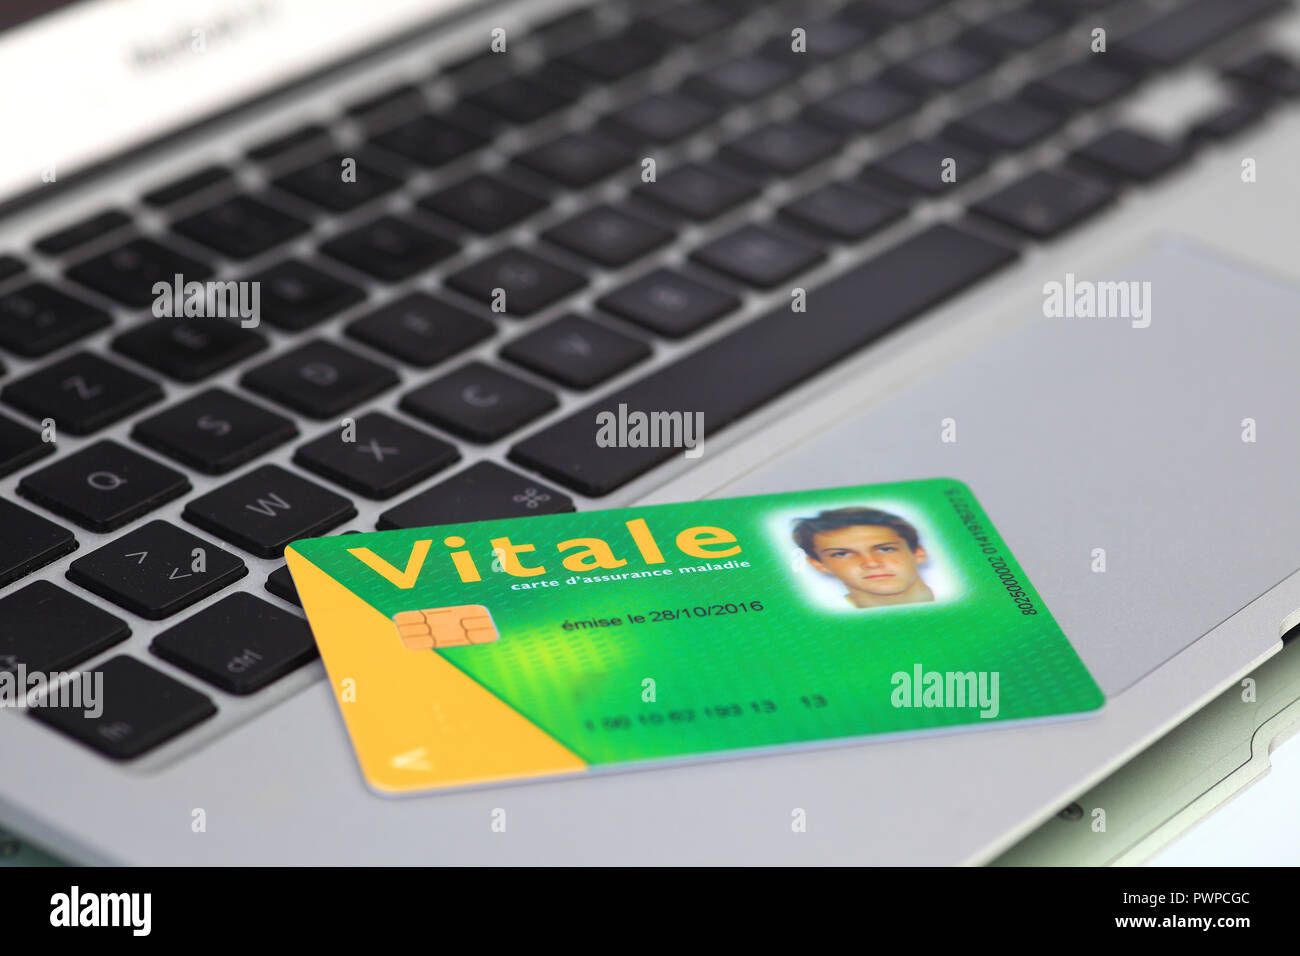 France. Young woman using smartphone by night.France, health card - Stock Image